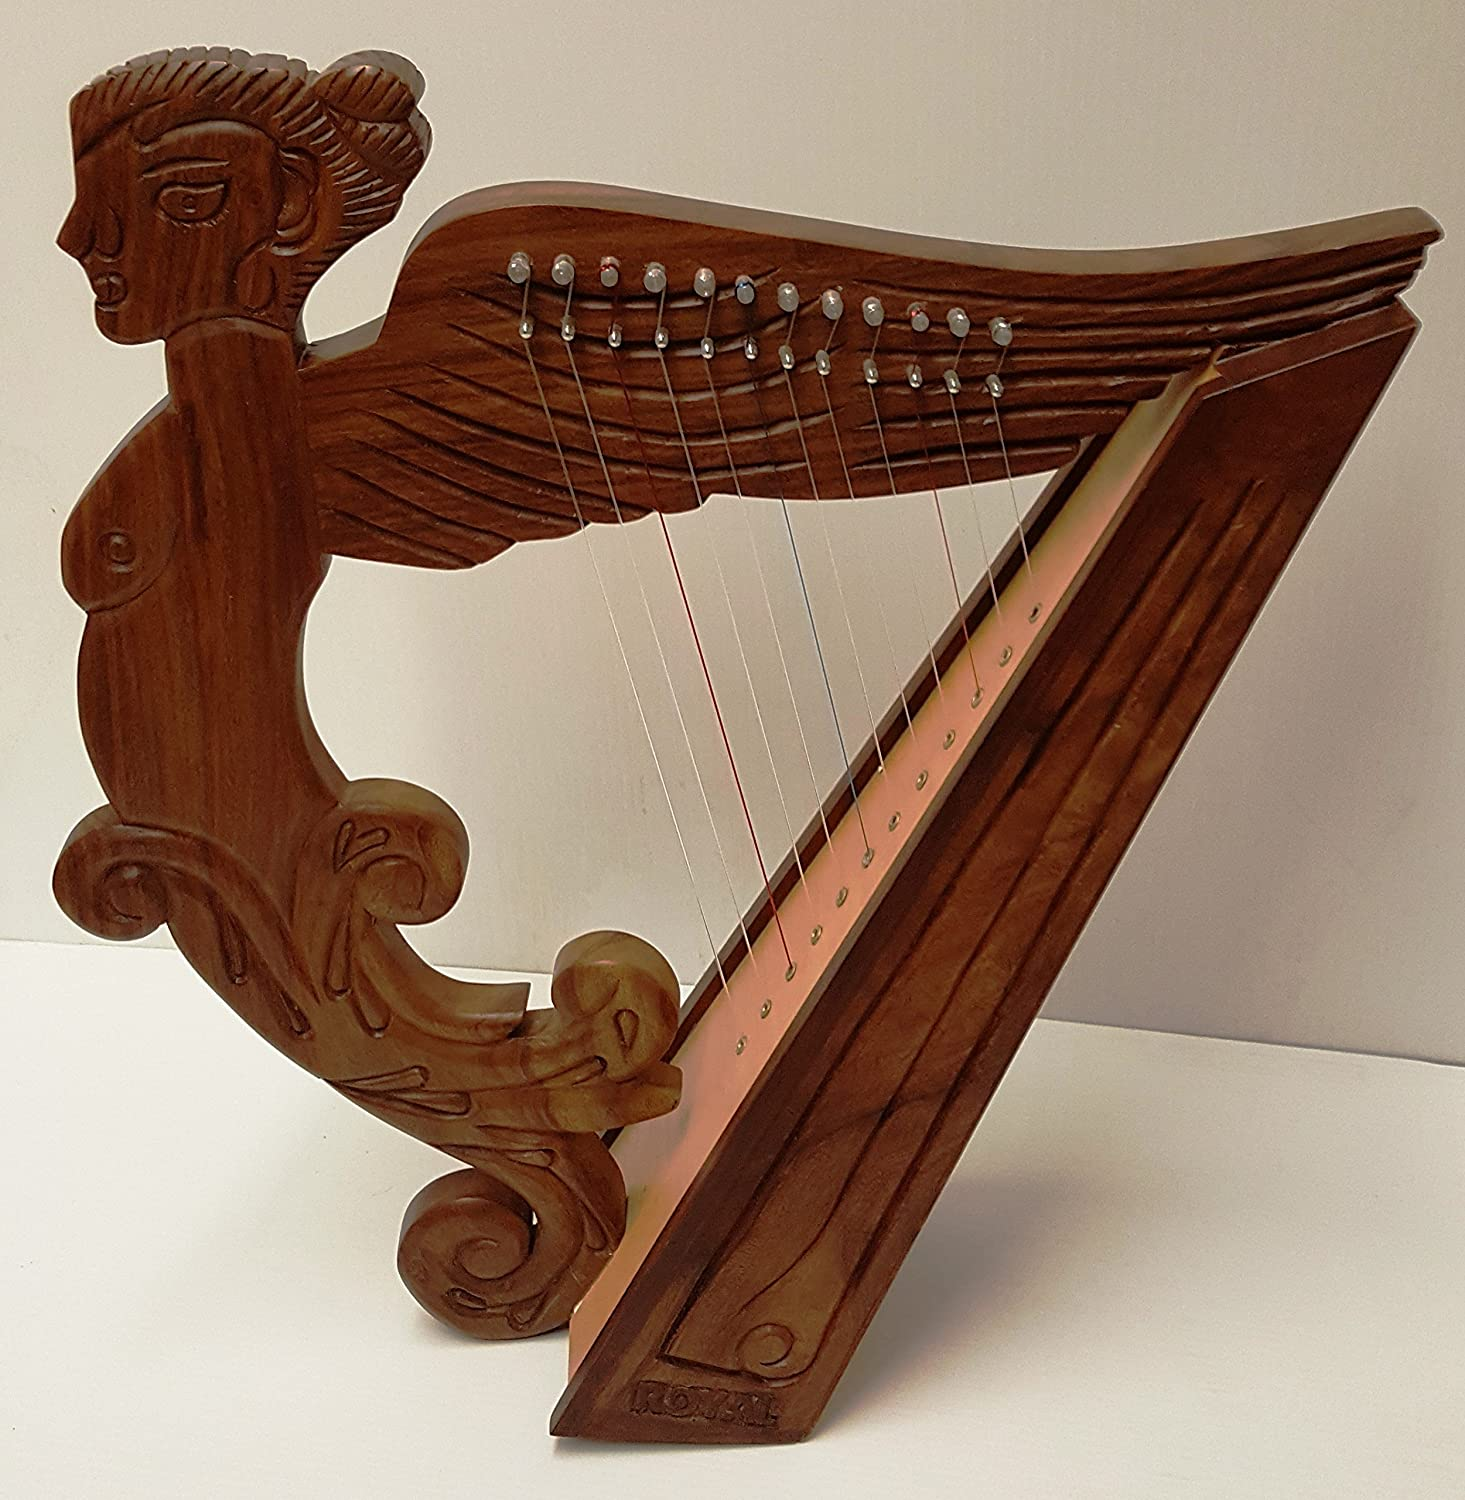 Angel Figure Shaped Harp Hand Carved and Engraved 12 String Great Craftsmanship Sturgis